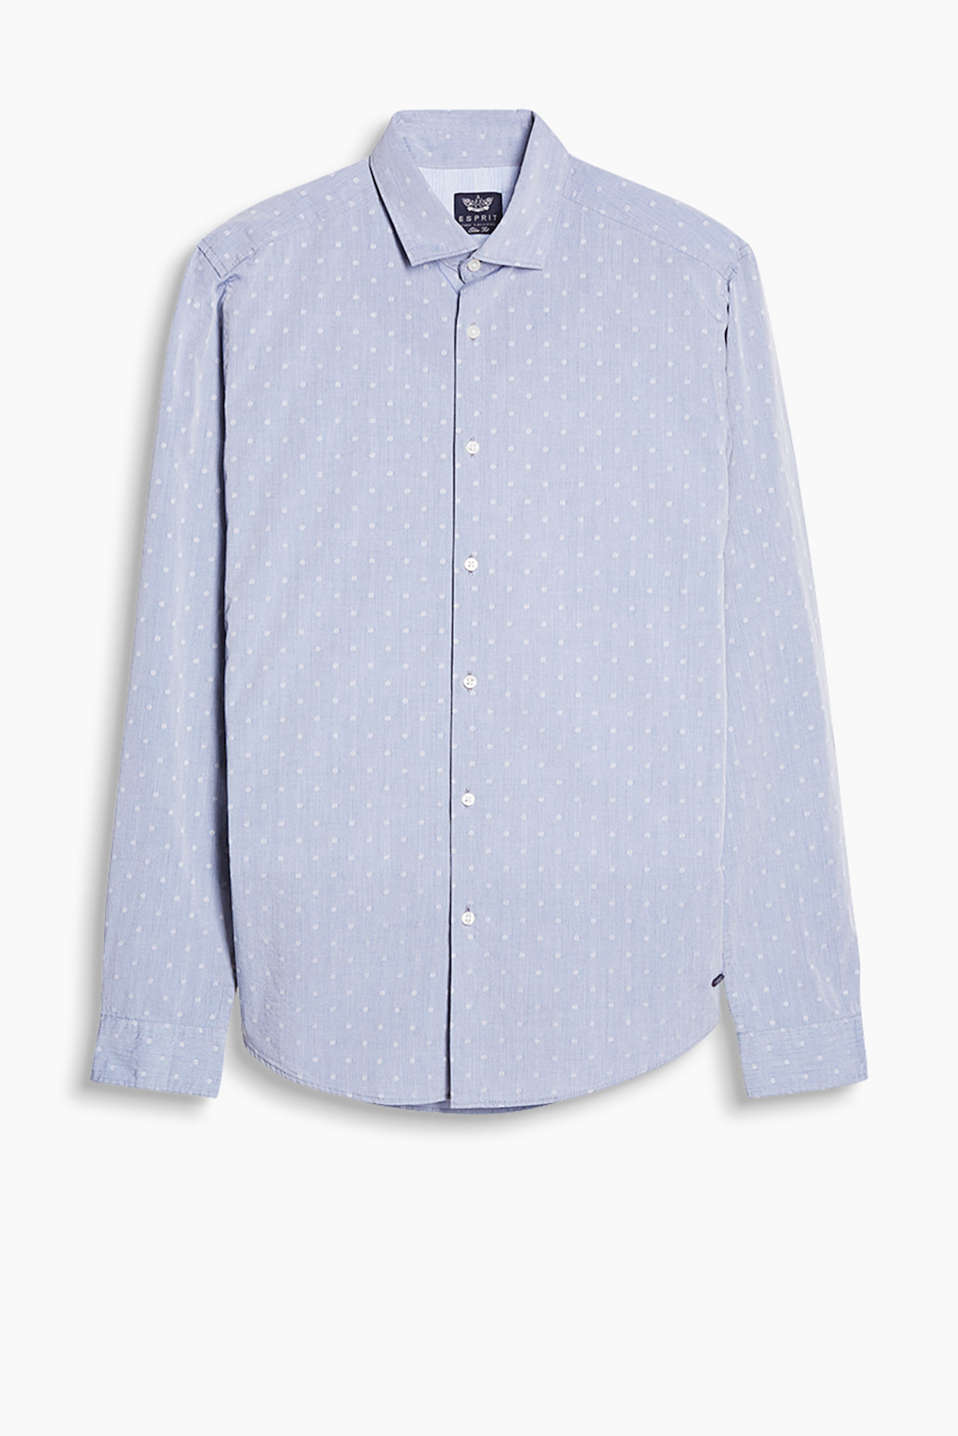 With interwoven polka dots and a shark collar: shirt in finely woven cotton